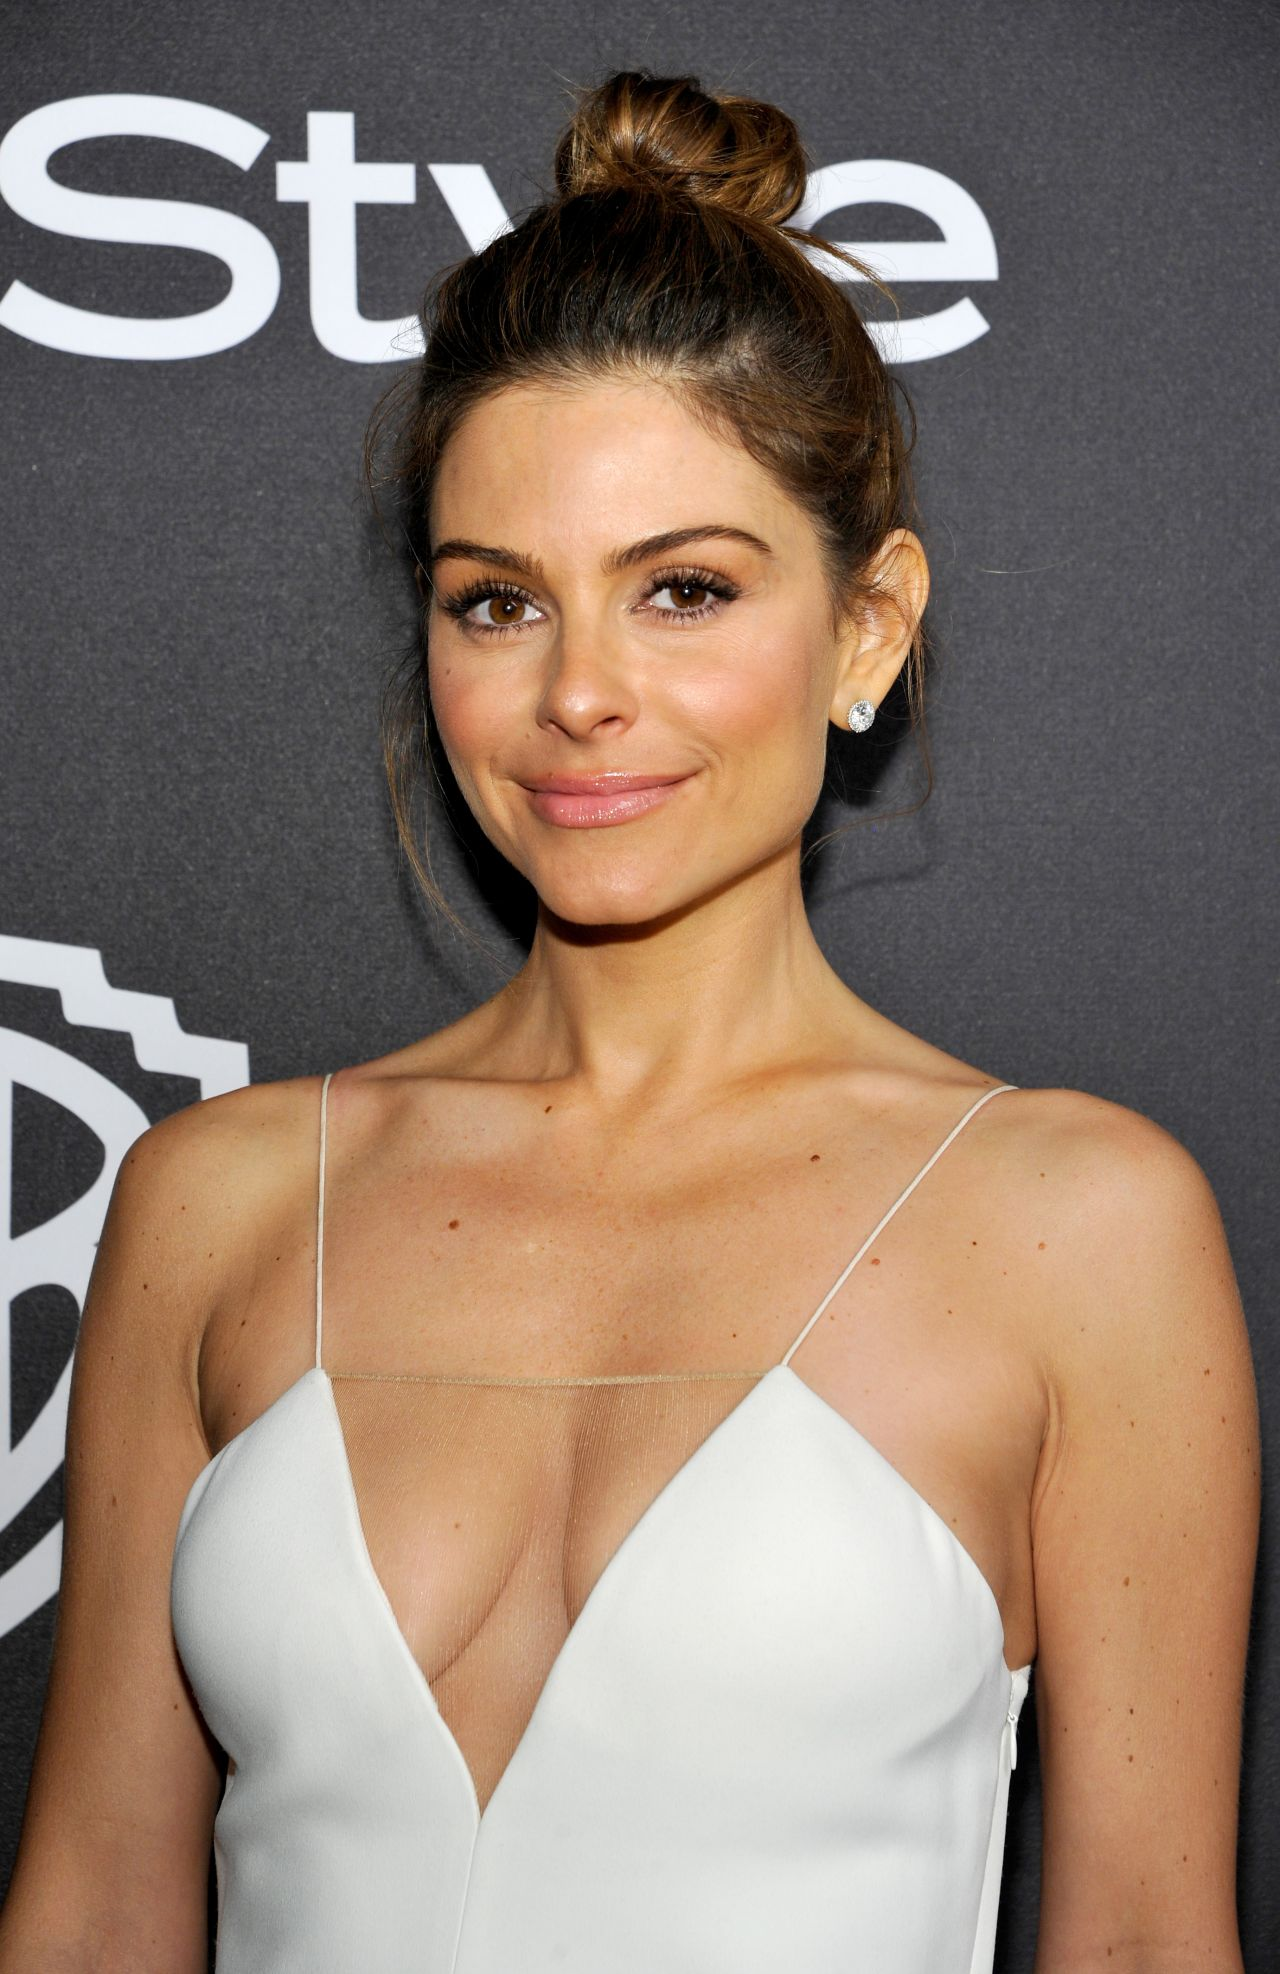 Pictures Maria Menounos nudes (54 foto and video), Ass, Hot, Boobs, cleavage 2017